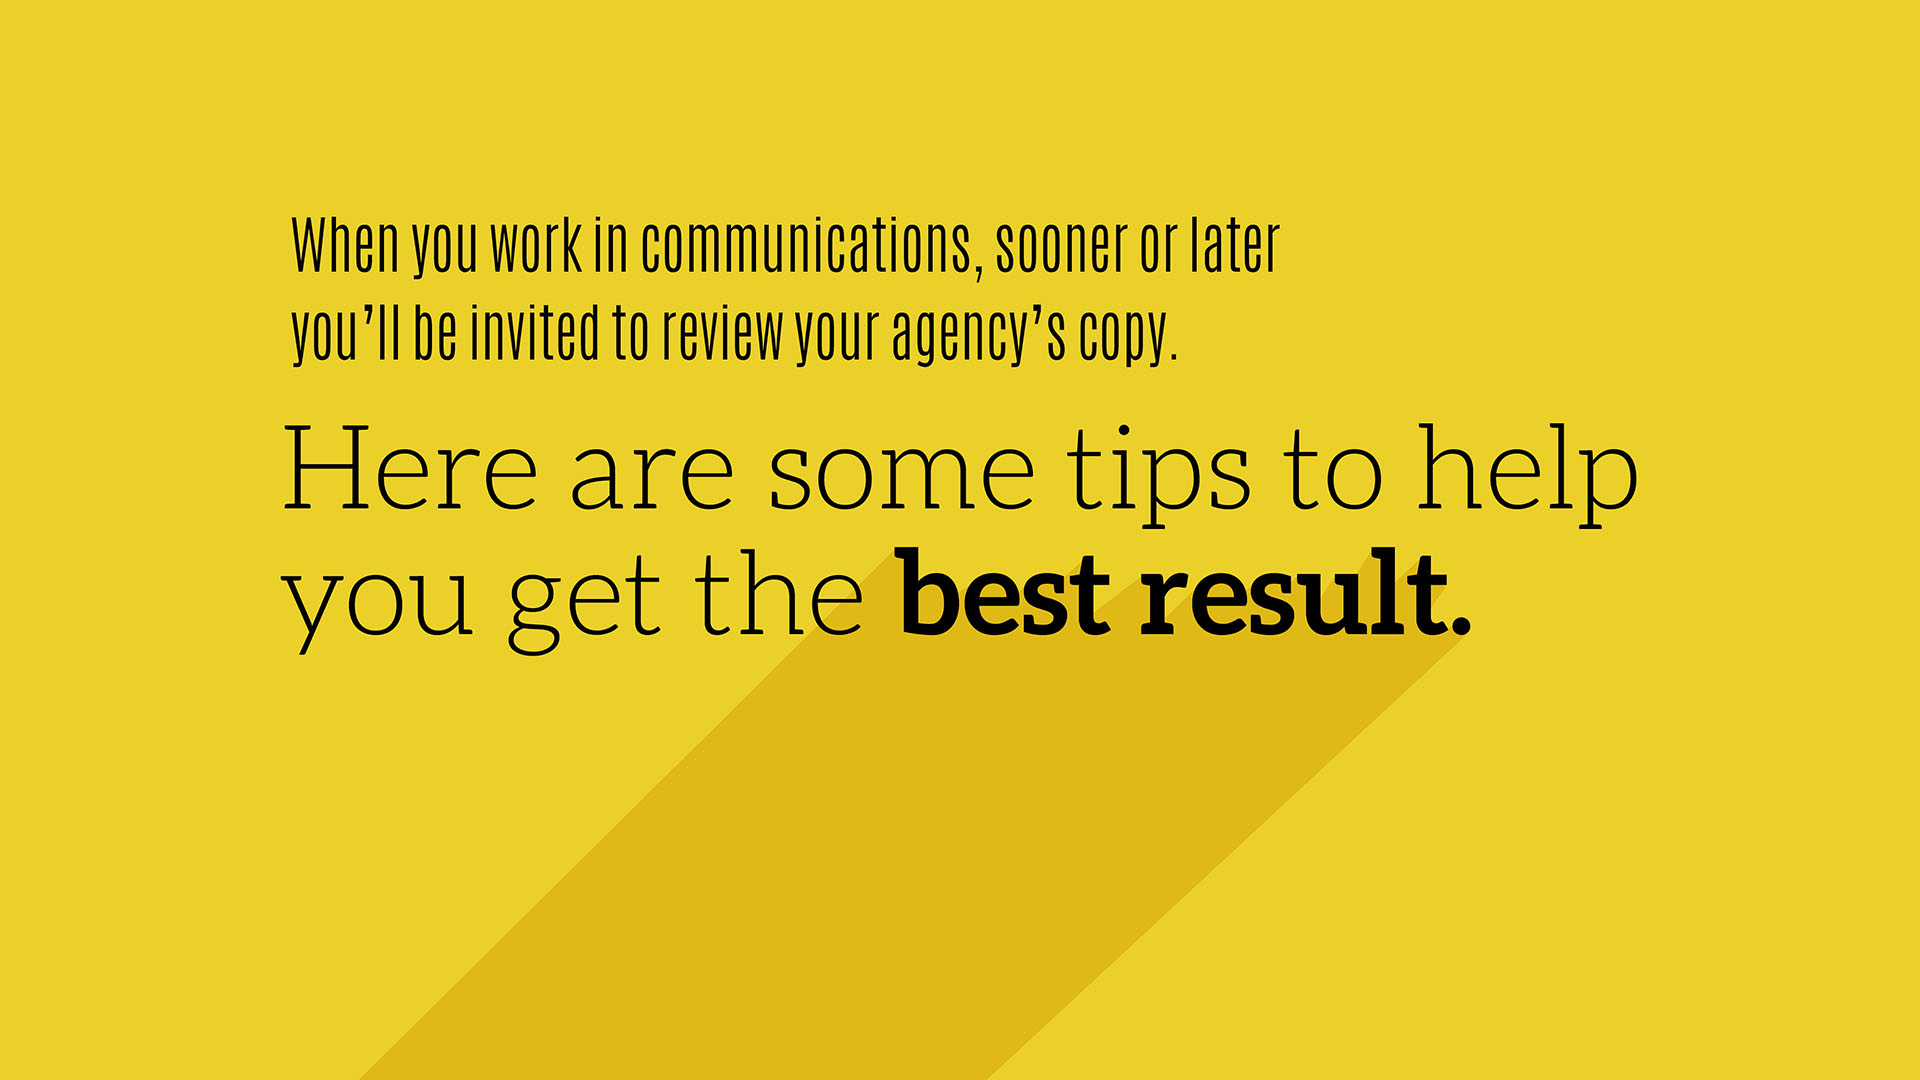 Tips_For_Reviewers_023